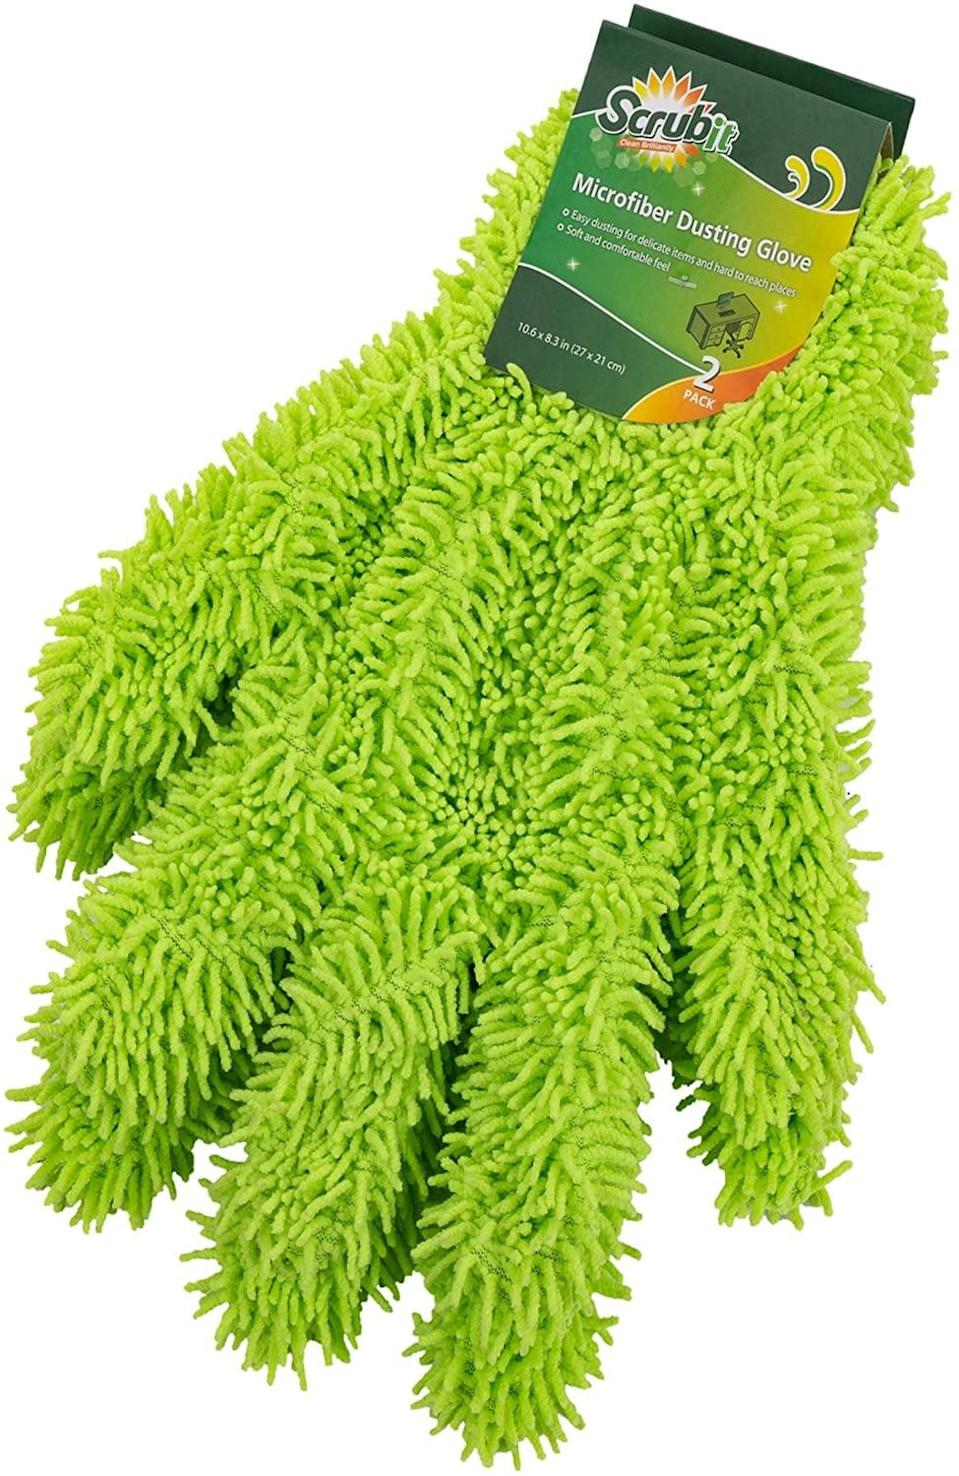 <p>Or instead of cleaning your dust-collecting display items with a towel or brush, slip on a <span>Microfiber Cleaning/Dusting Glove (1 Pair, Washable/Reusable)</span> ($10), and you can admire <em>and</em> clean them at the same exact time.</p>